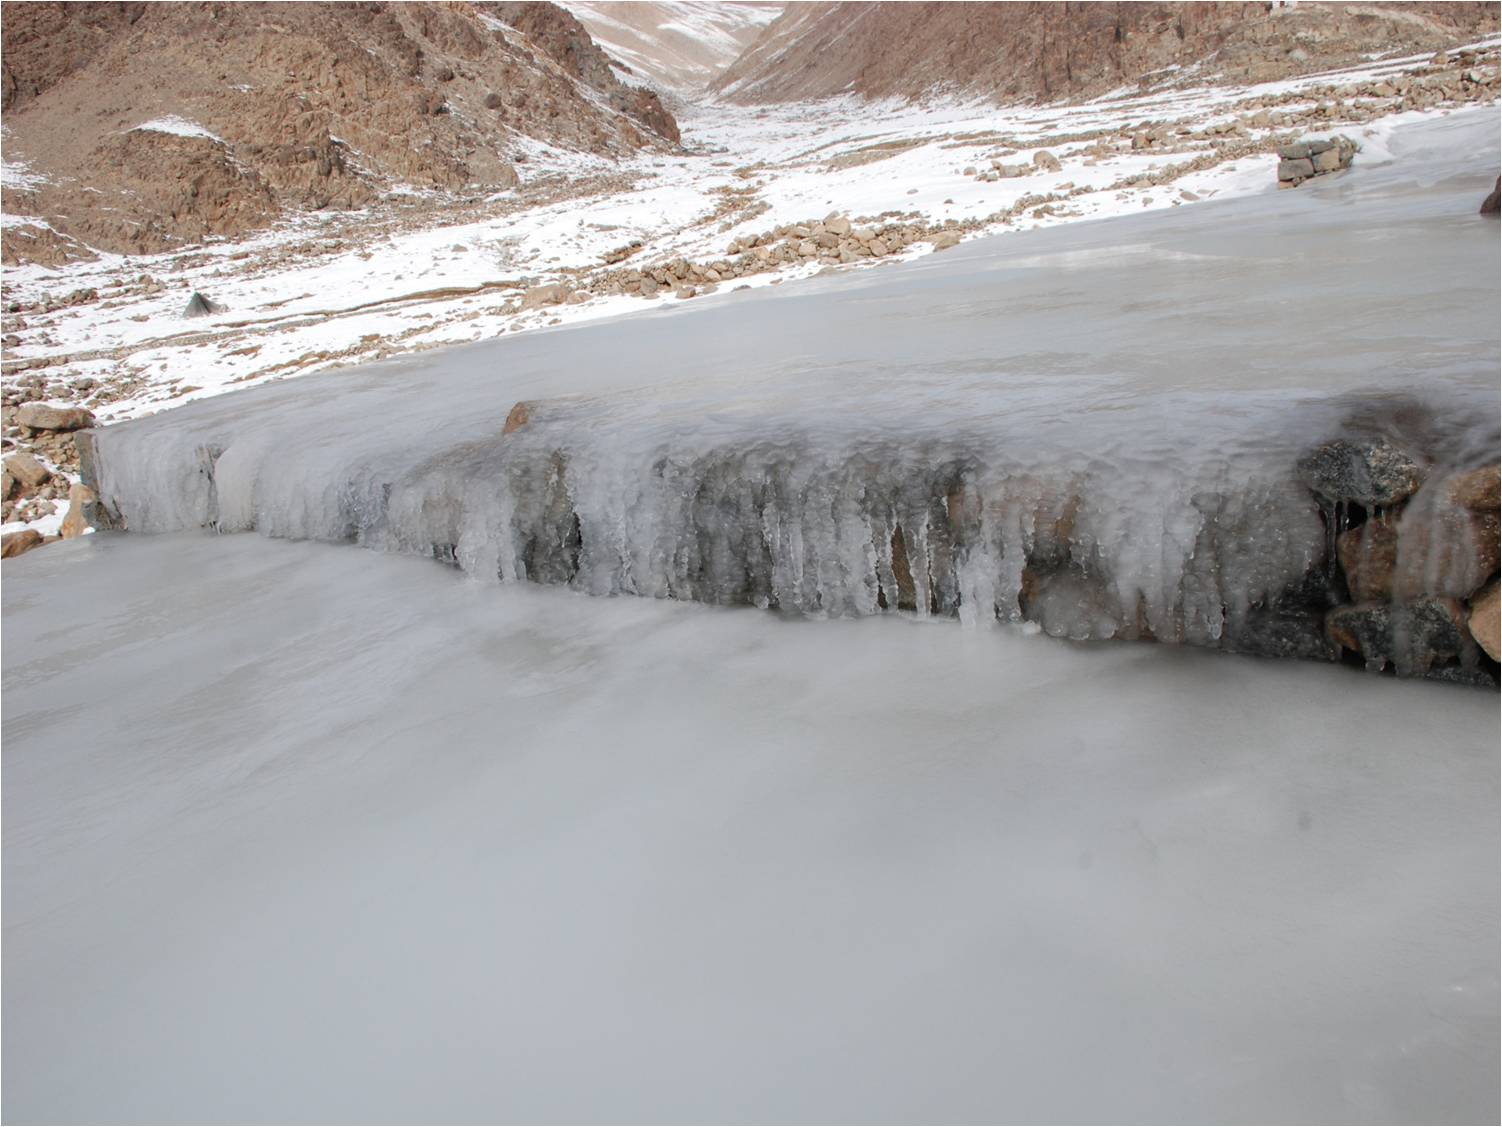 Flat pool-like structures that looked like fields of ice were constructed at an altitude of about 5,000 m (Photo: Chewang Norphel)